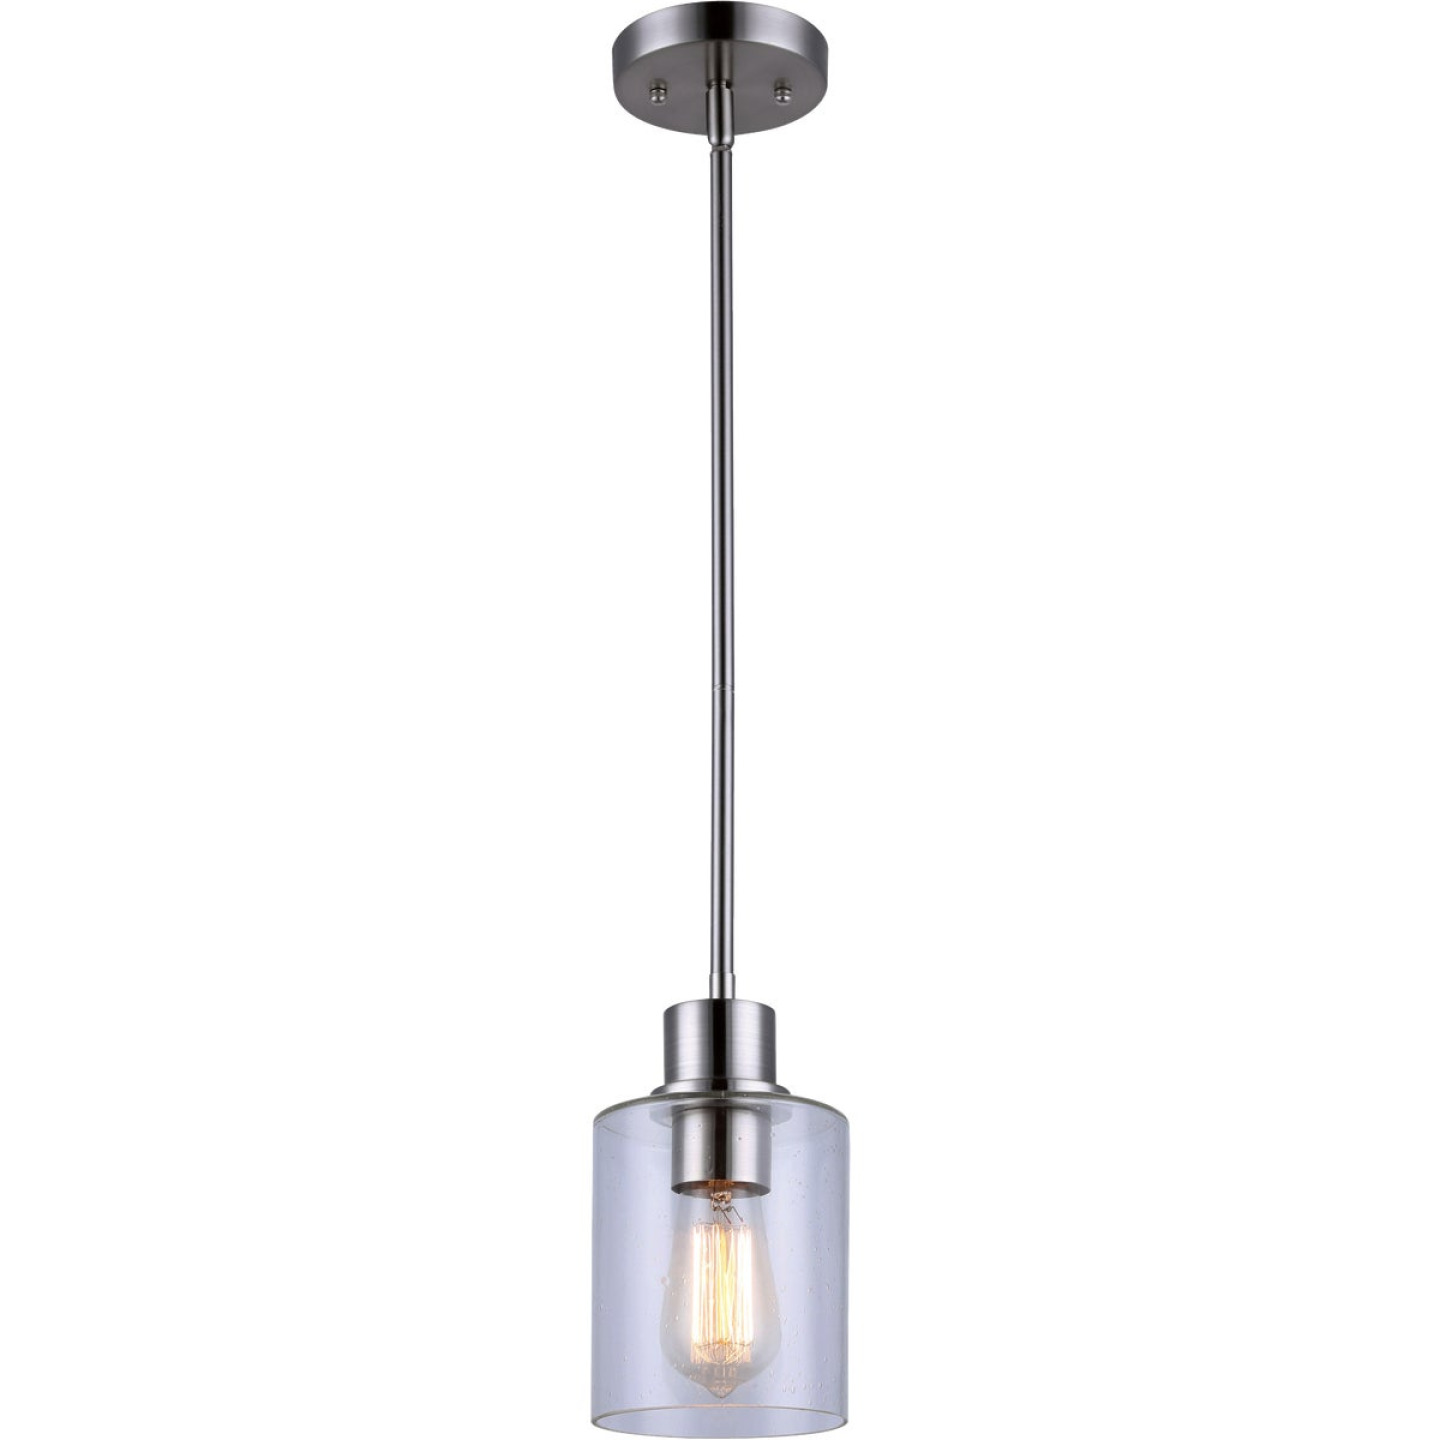 Home Impressions Portland 1-Bulb Brushed Nickel Incandescent Pendant Light Fixture Image 1